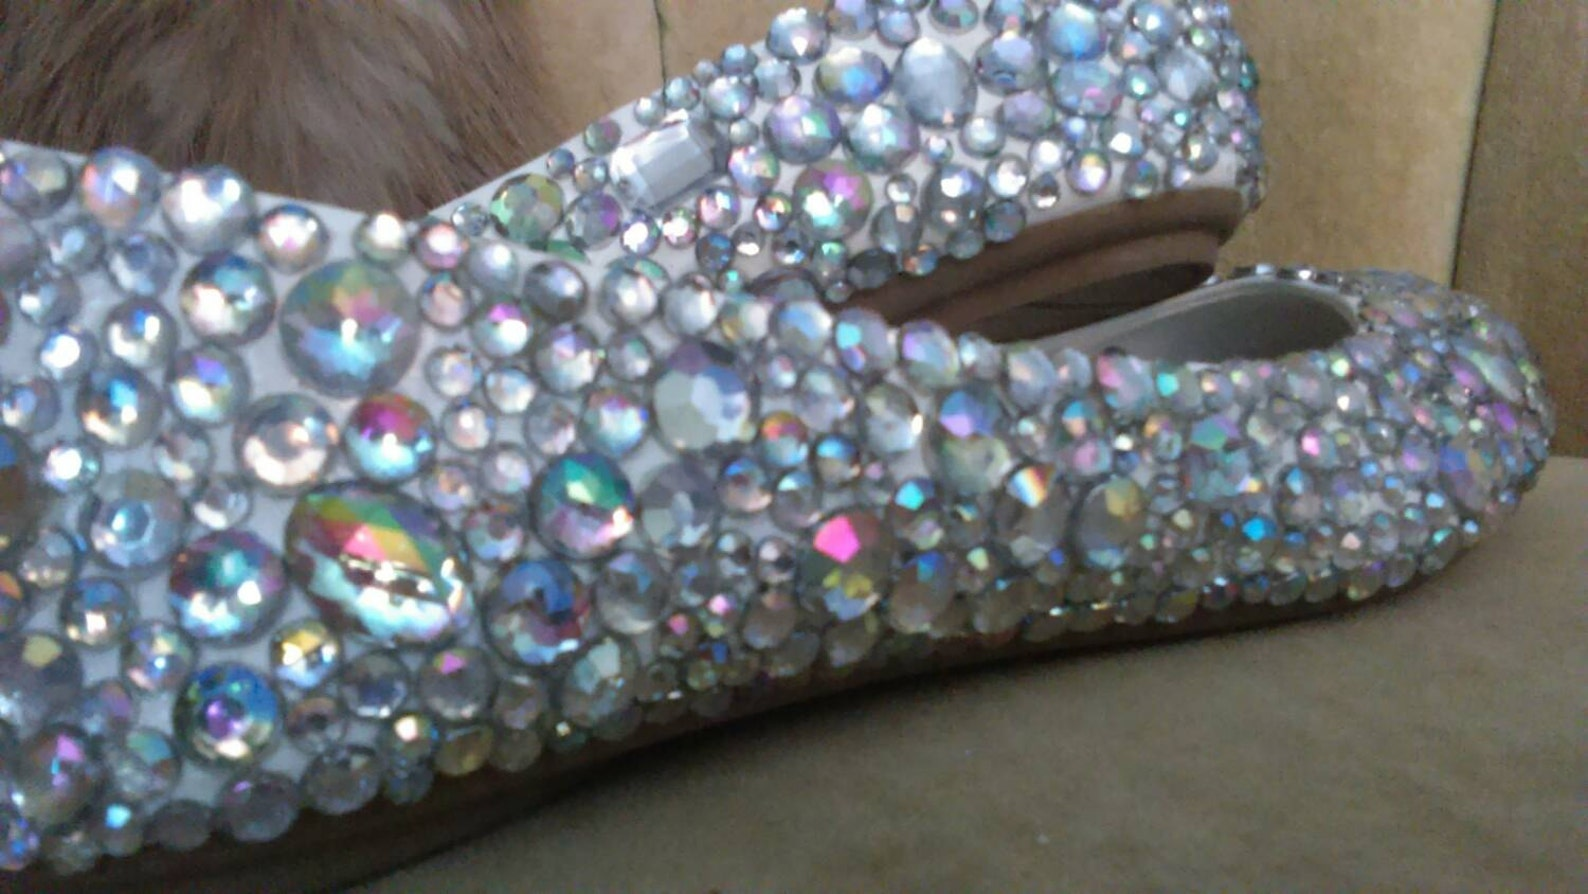 custom made to order, crystal ballet flats. wedding flats brides maids flats. custom made to order ballet flats.